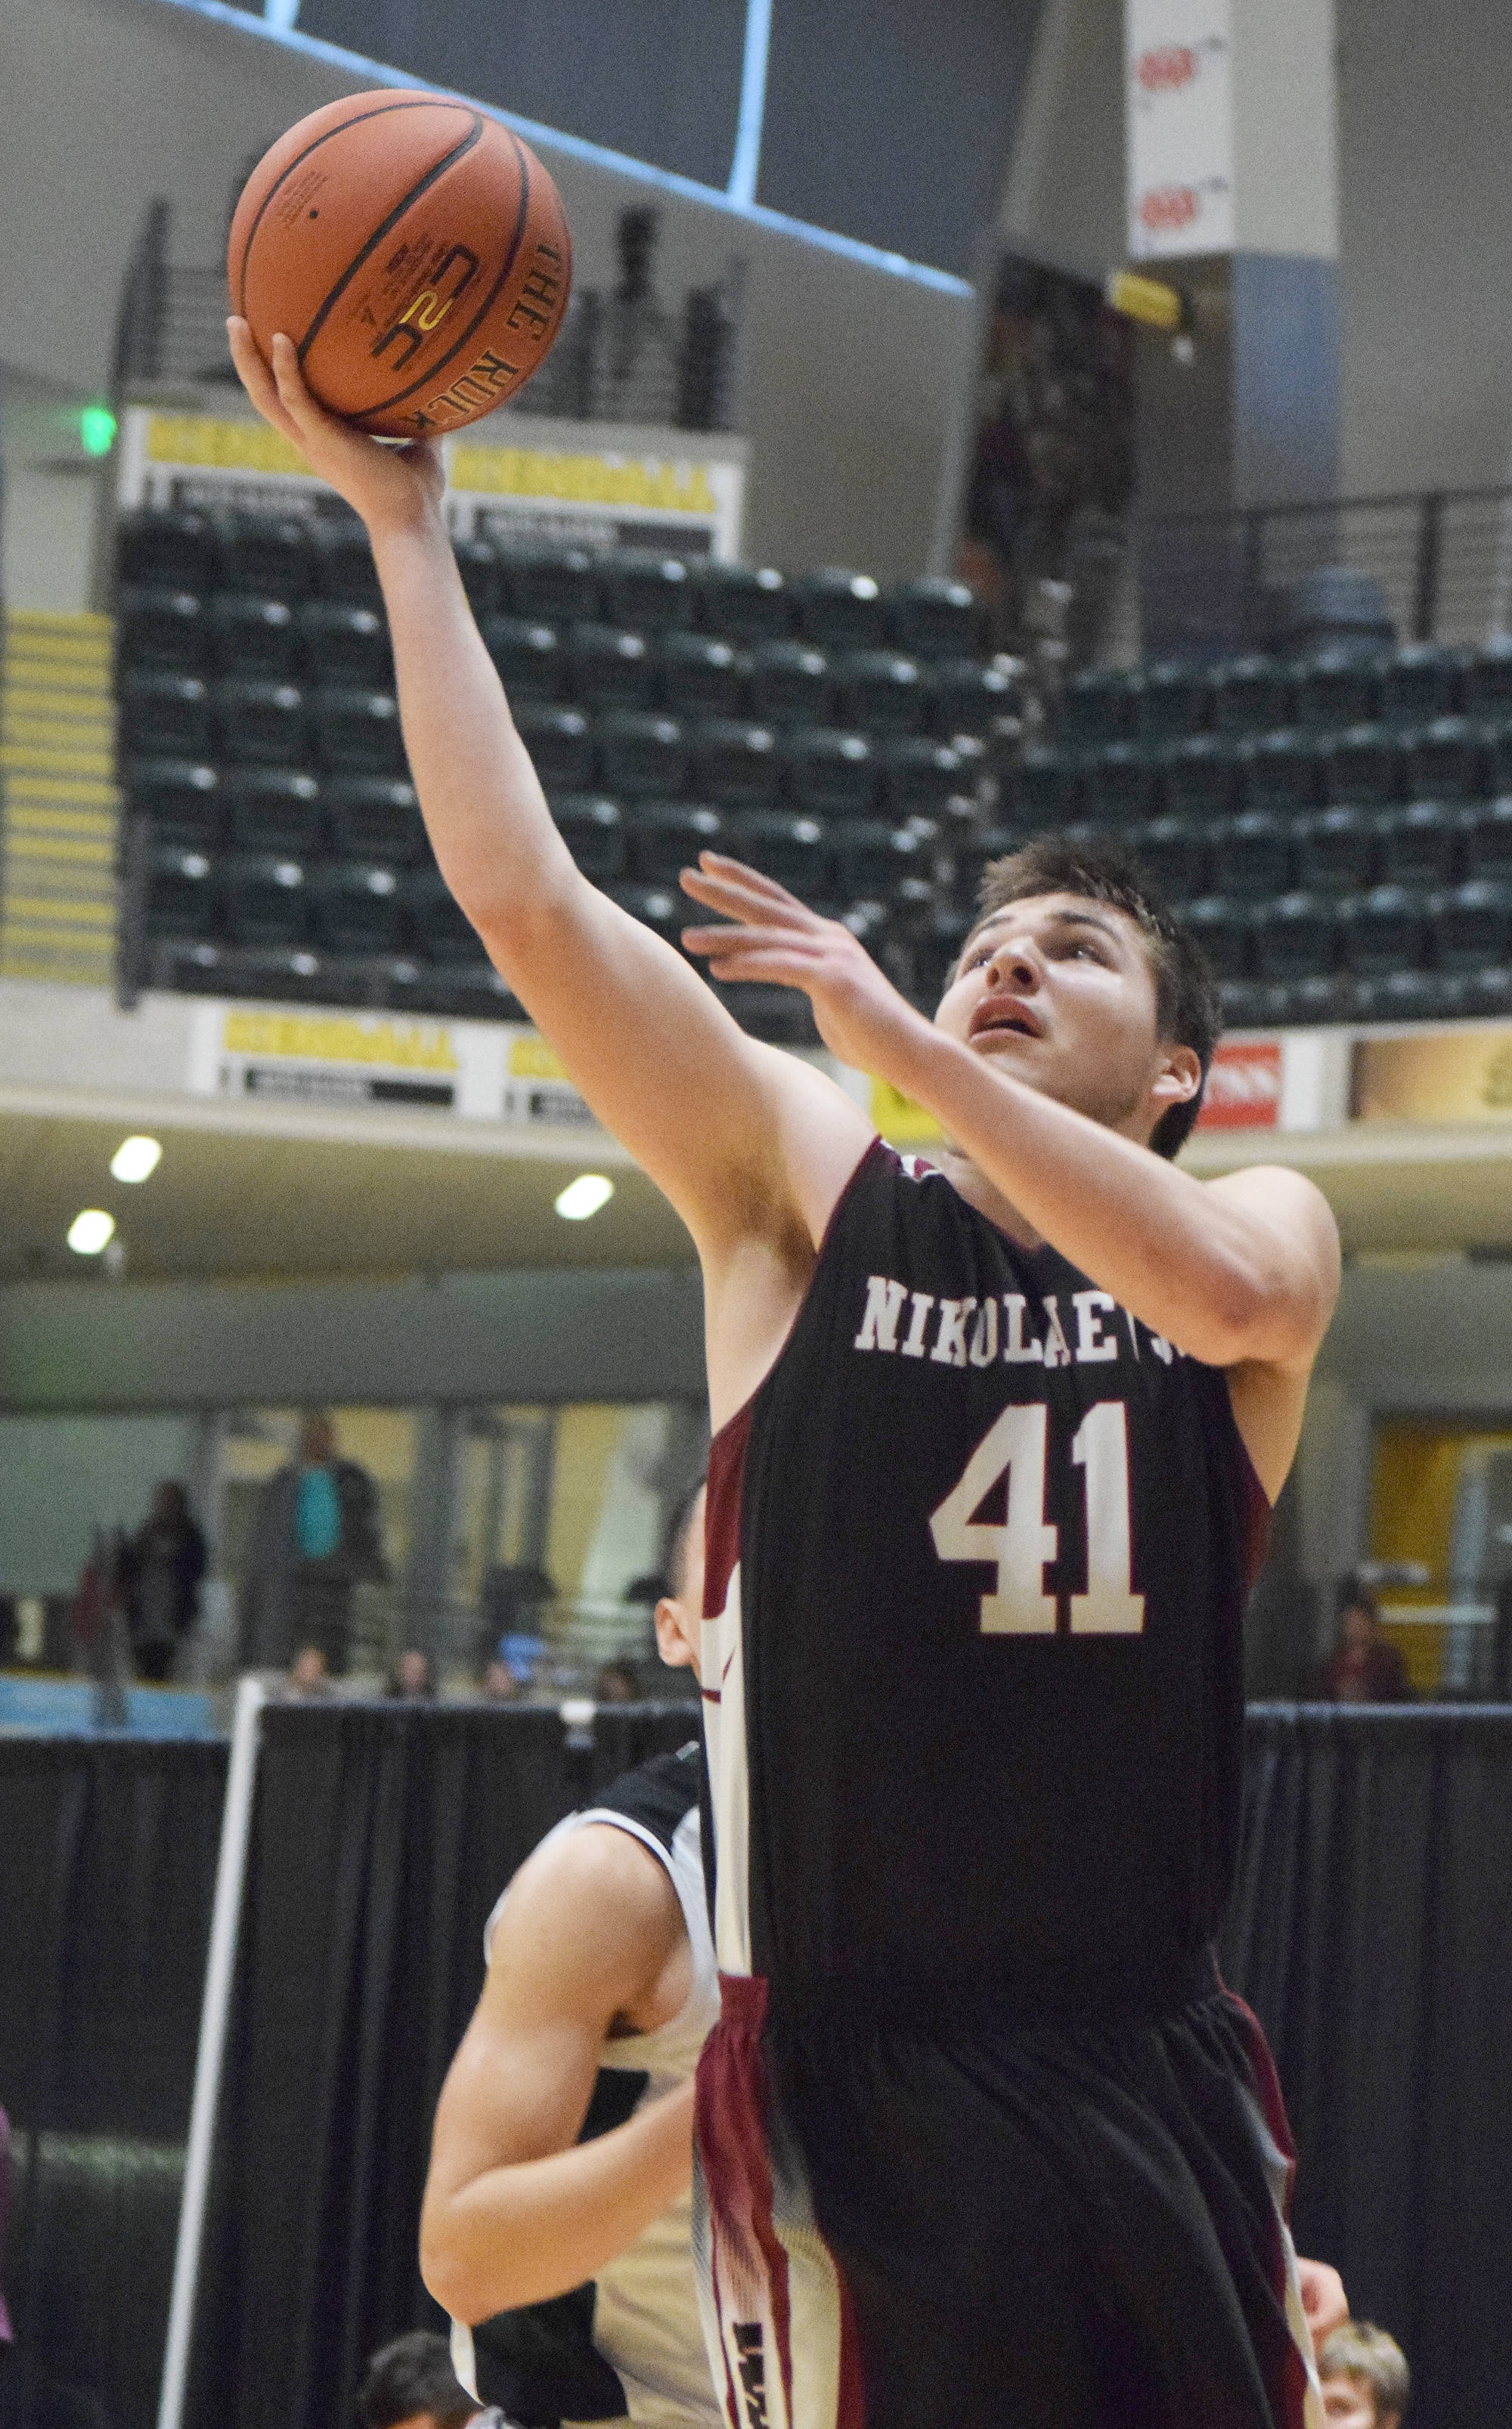 Nikolaevsk junior Michael Trail puts up a layup Friday in a Class 1A state tournament fourth-place semifinal contest against Shishmaref at the Alaska Airlines Center. (Photo by Joey Klecka/Peninsula Clarion)